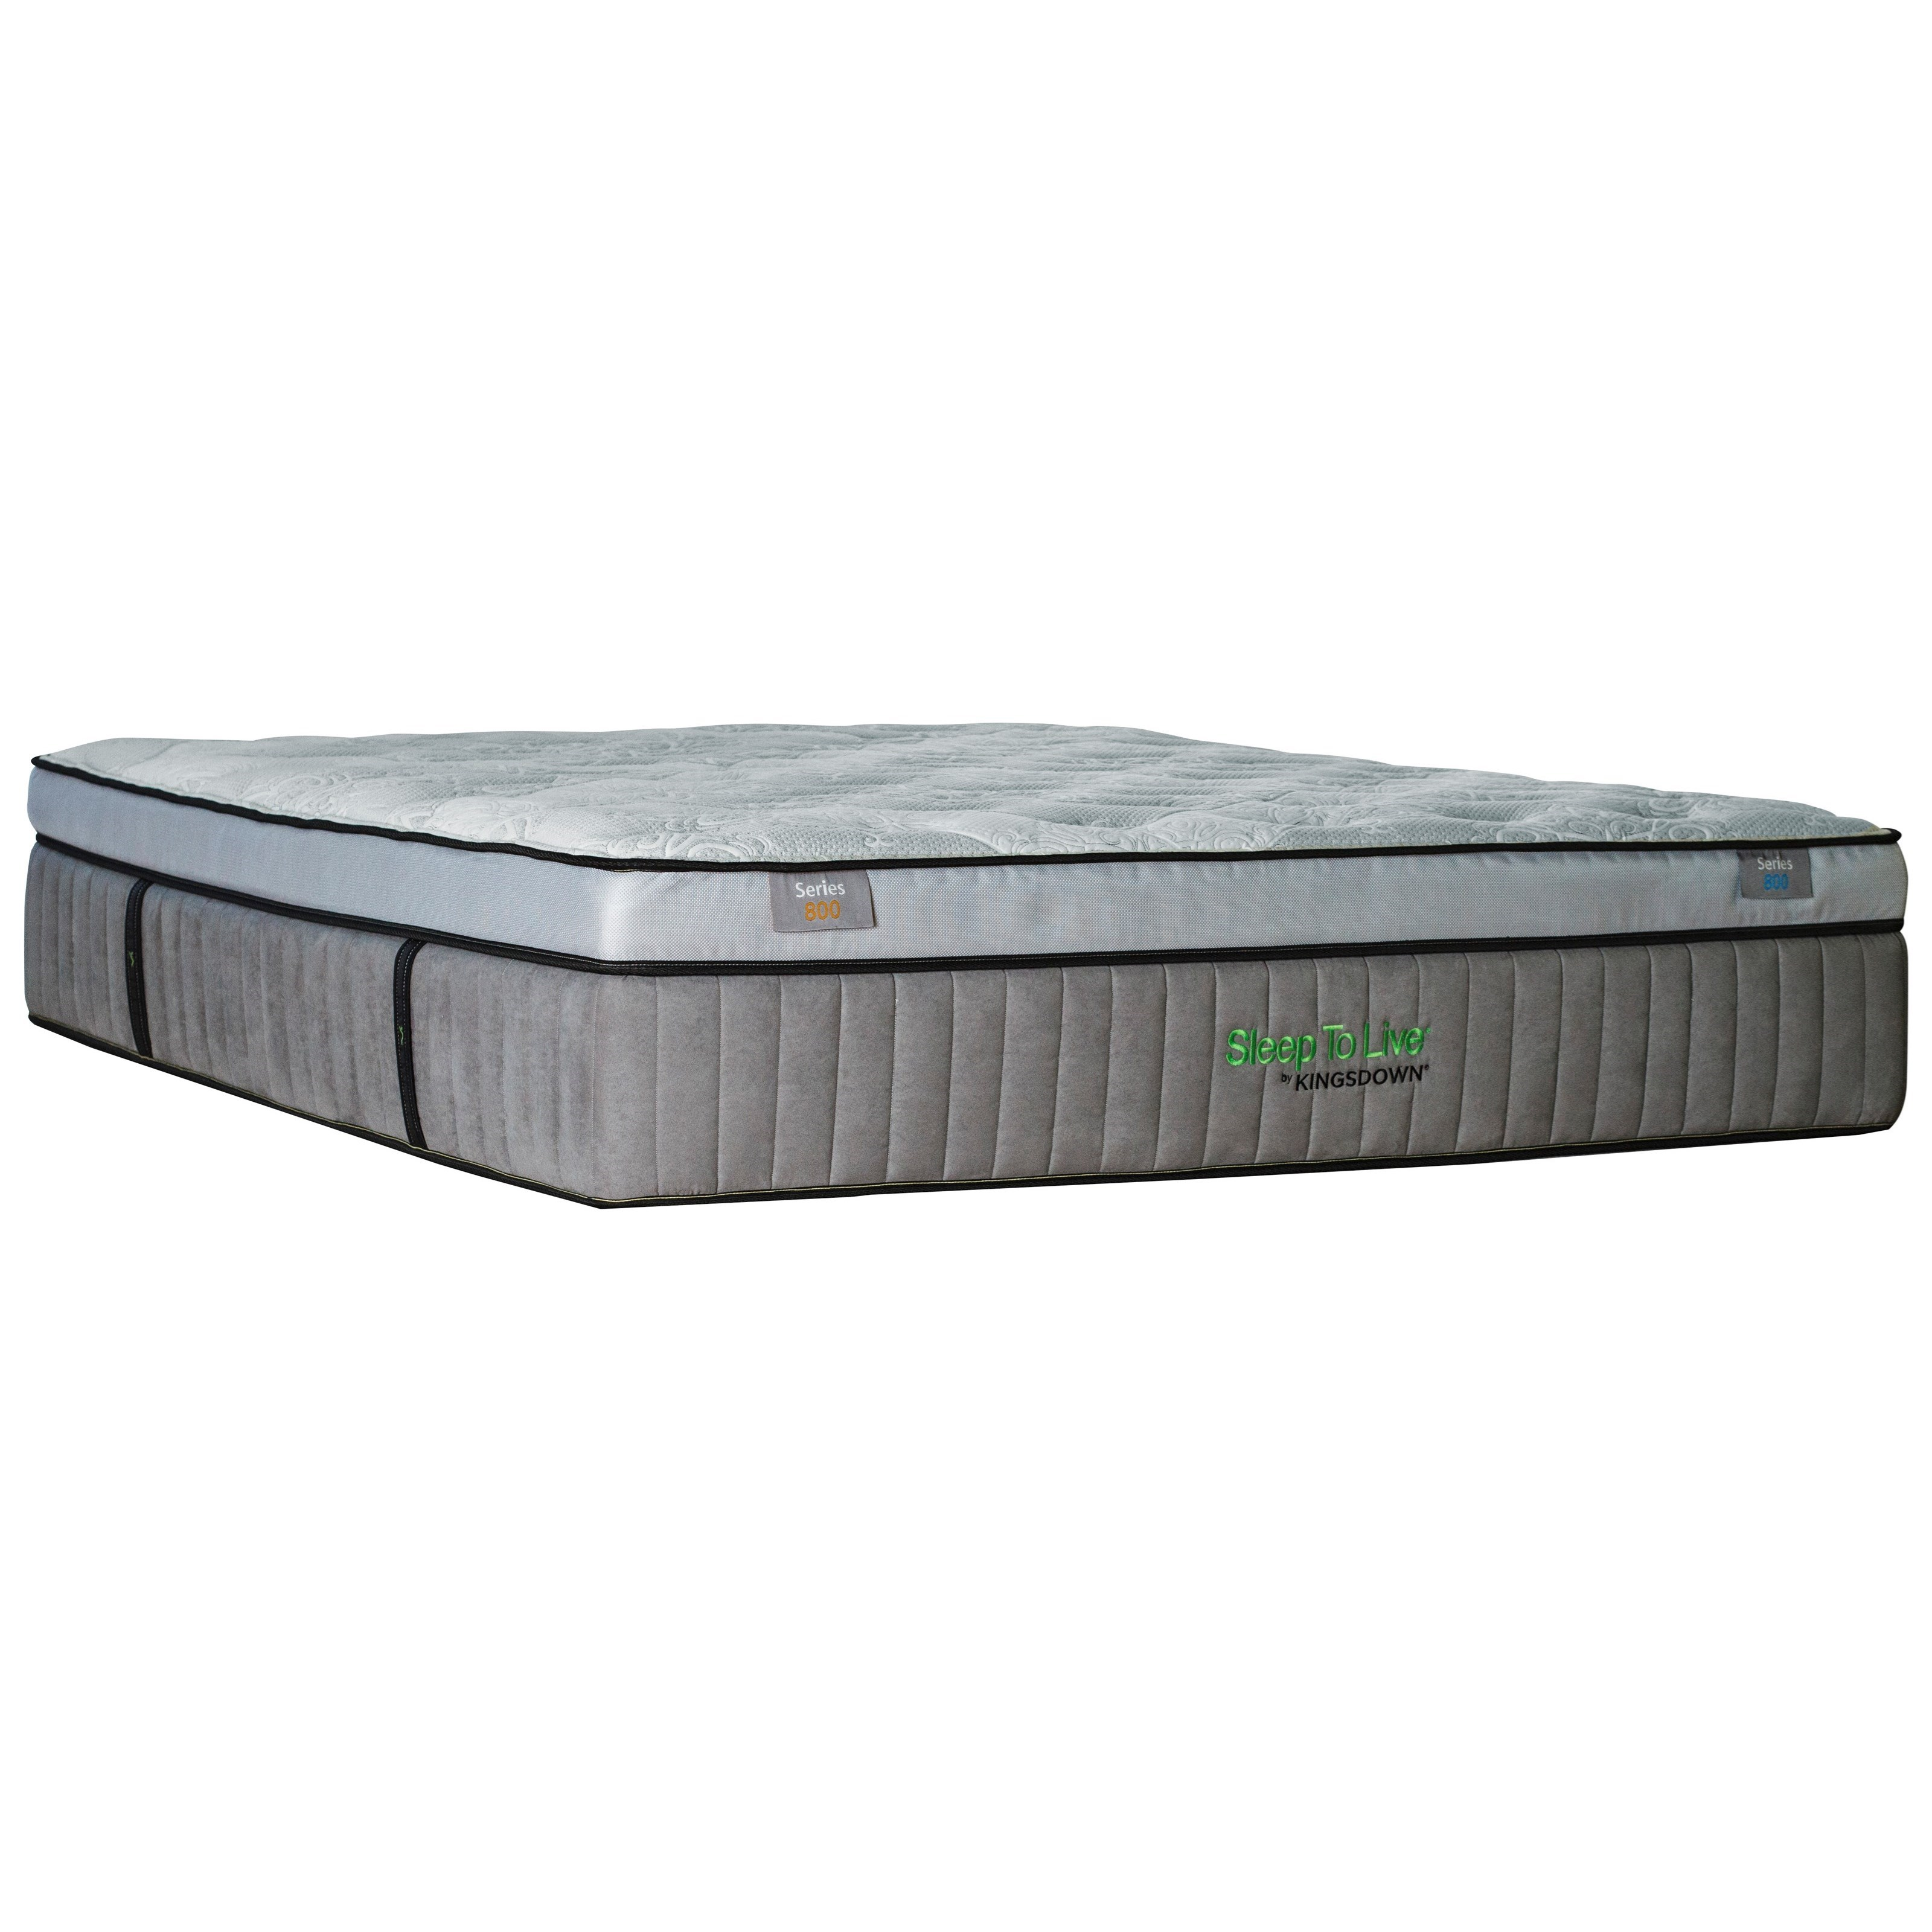 "Kingsdown 5257 Blue Series 800 Twin XL 16.5"" Cushion Firm Box Top Mattress - Item Number: 5257-TXL"